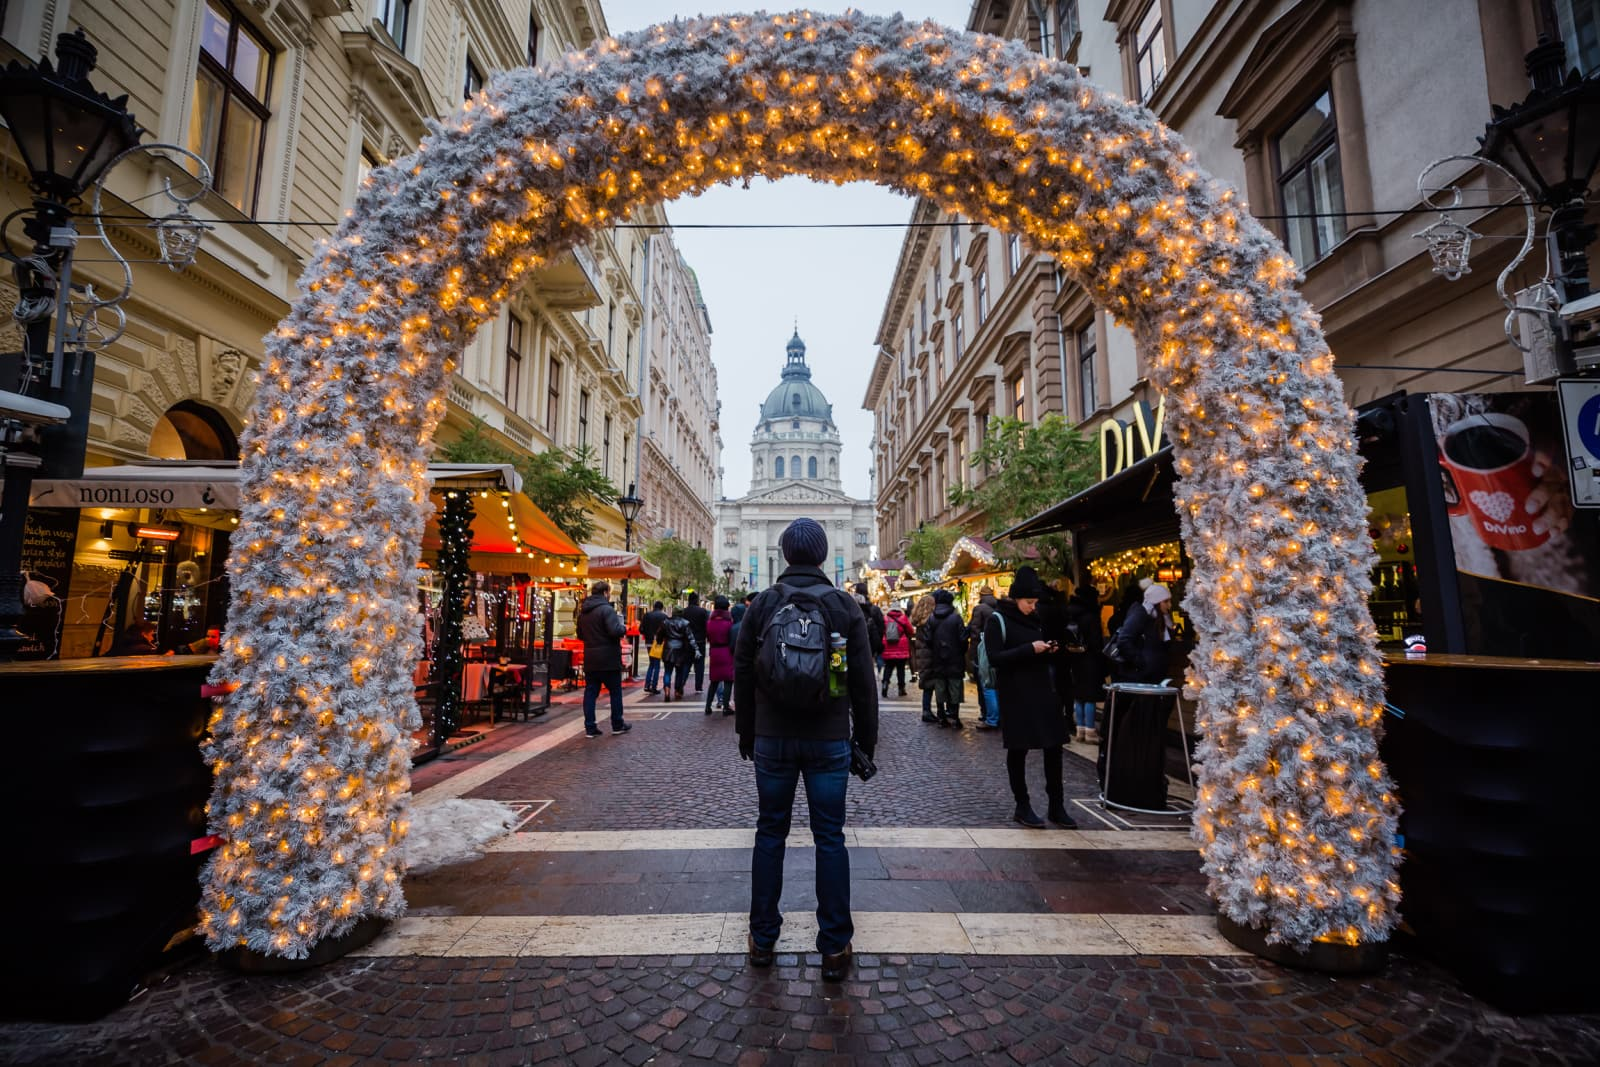 15 Best Christmas Markets in Europe